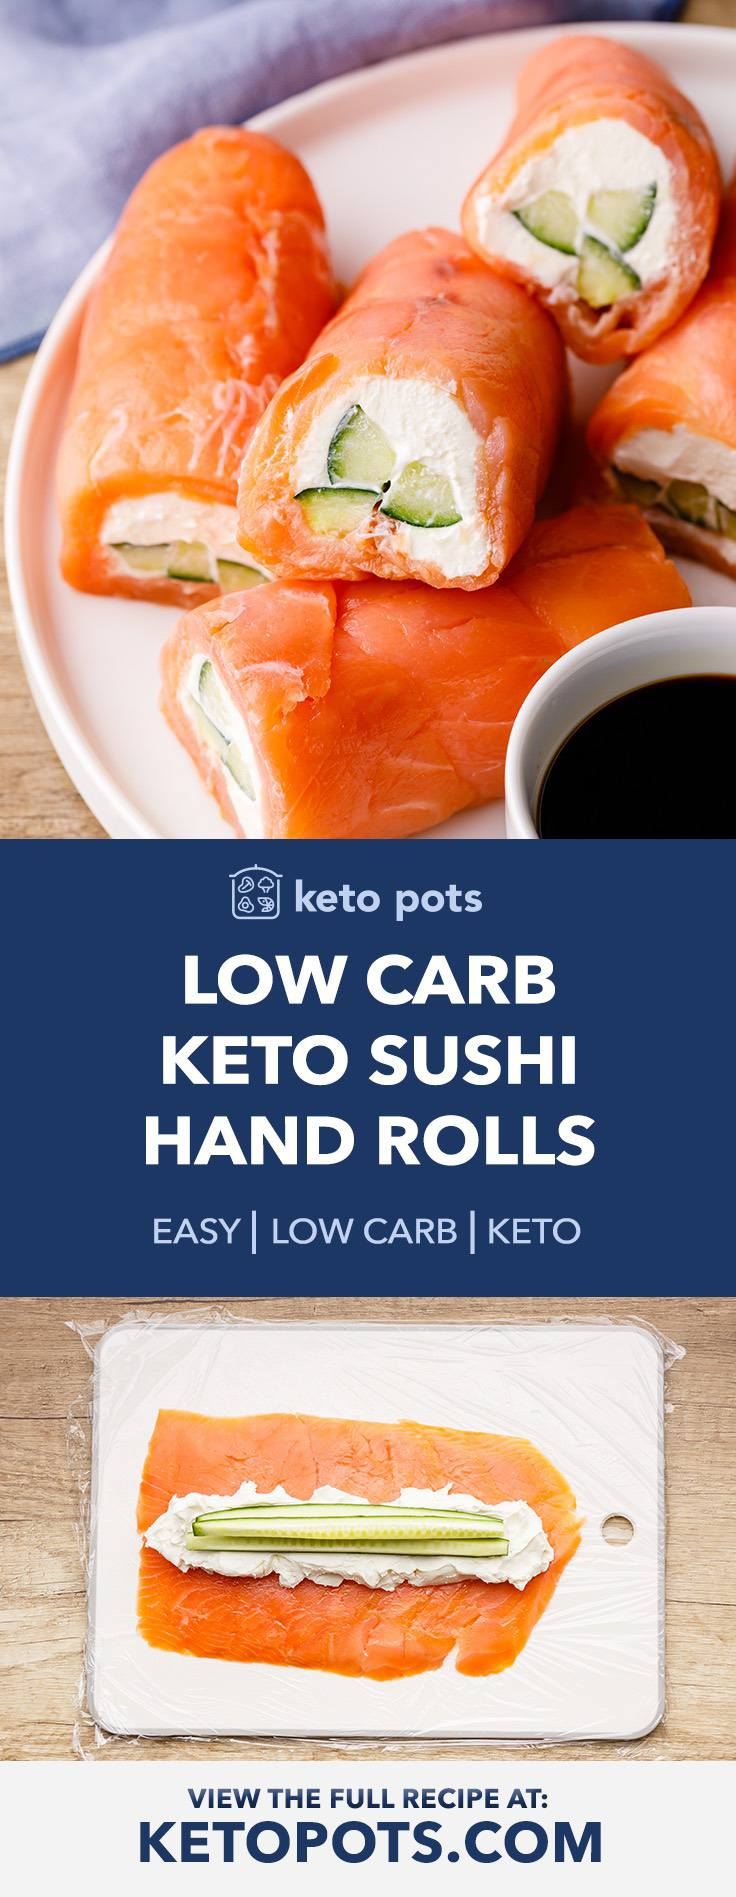 Low Carb Keto Sushi Hand Rolls Without Rice or Cauliflower